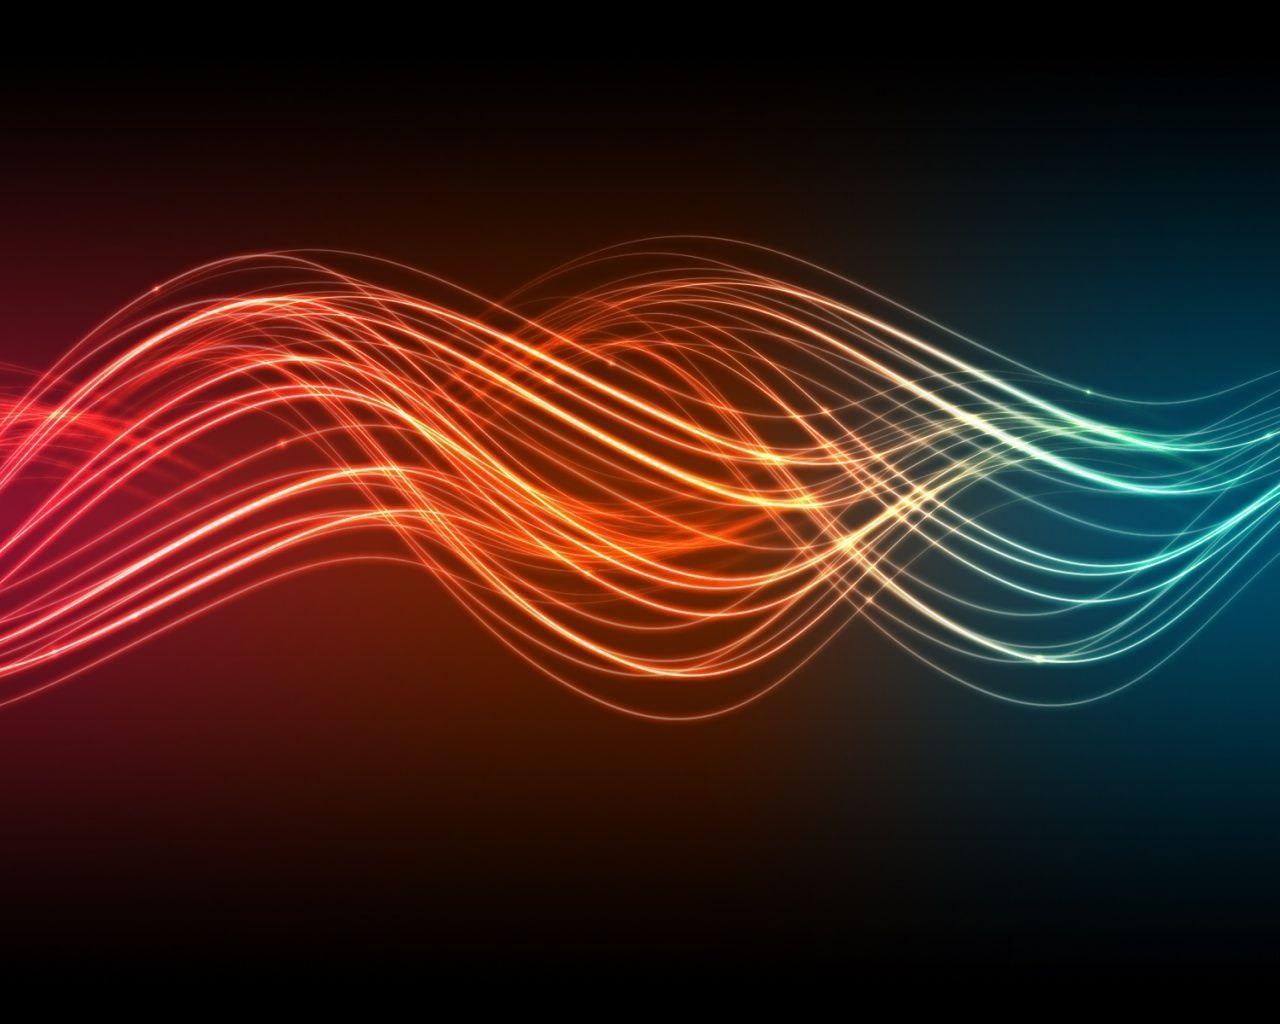 Sound Waves Wallpapers 1280x1024